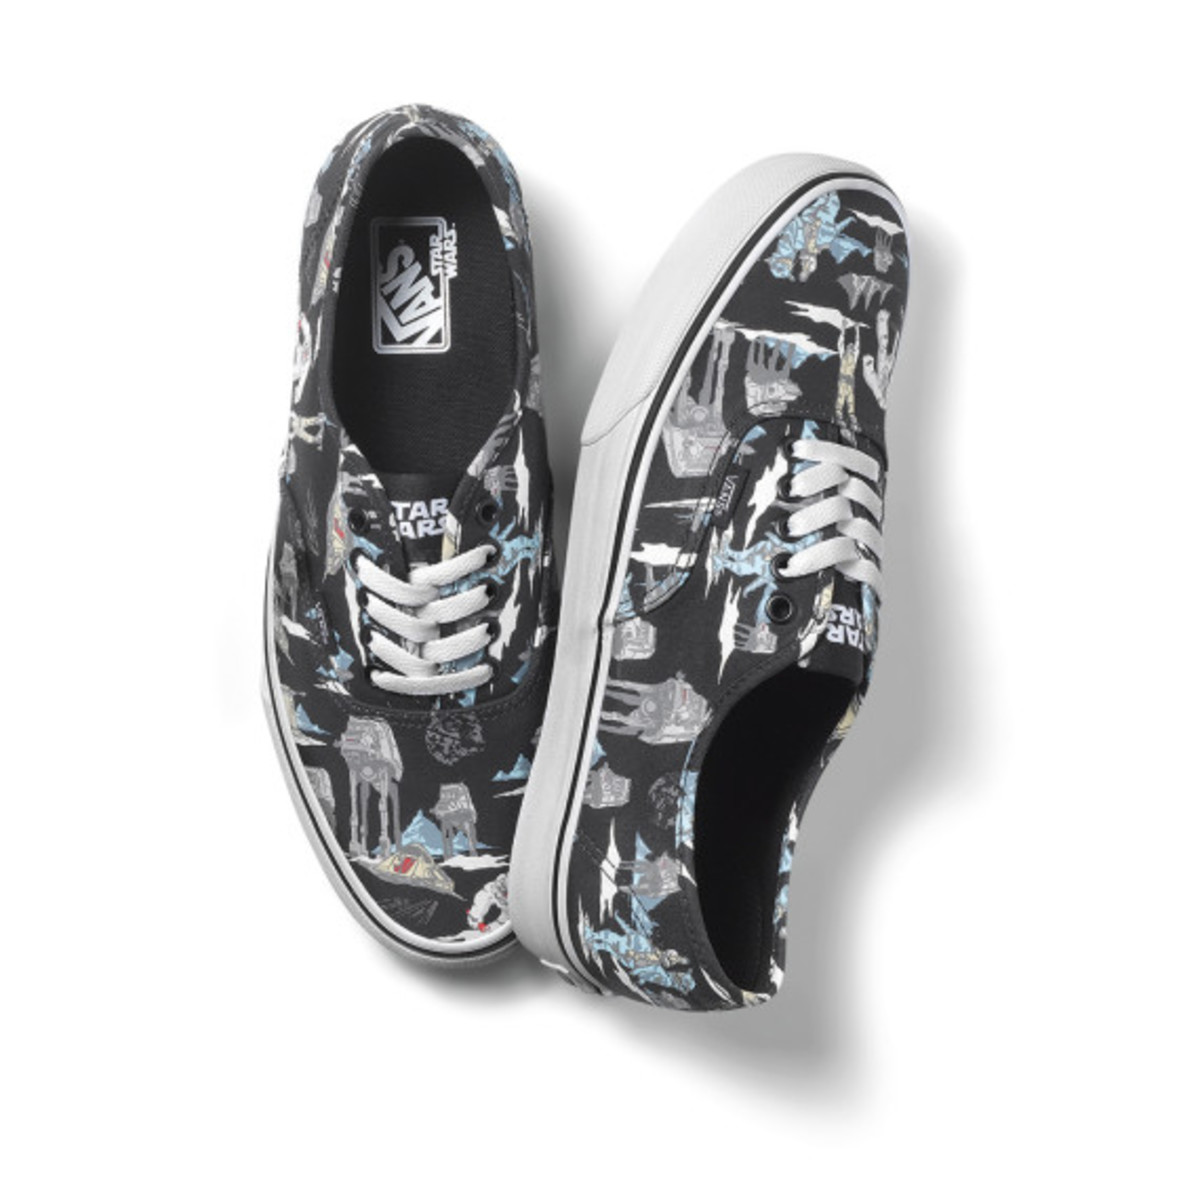 Star Wars x VANS – Holiday 2014 Collection - 6